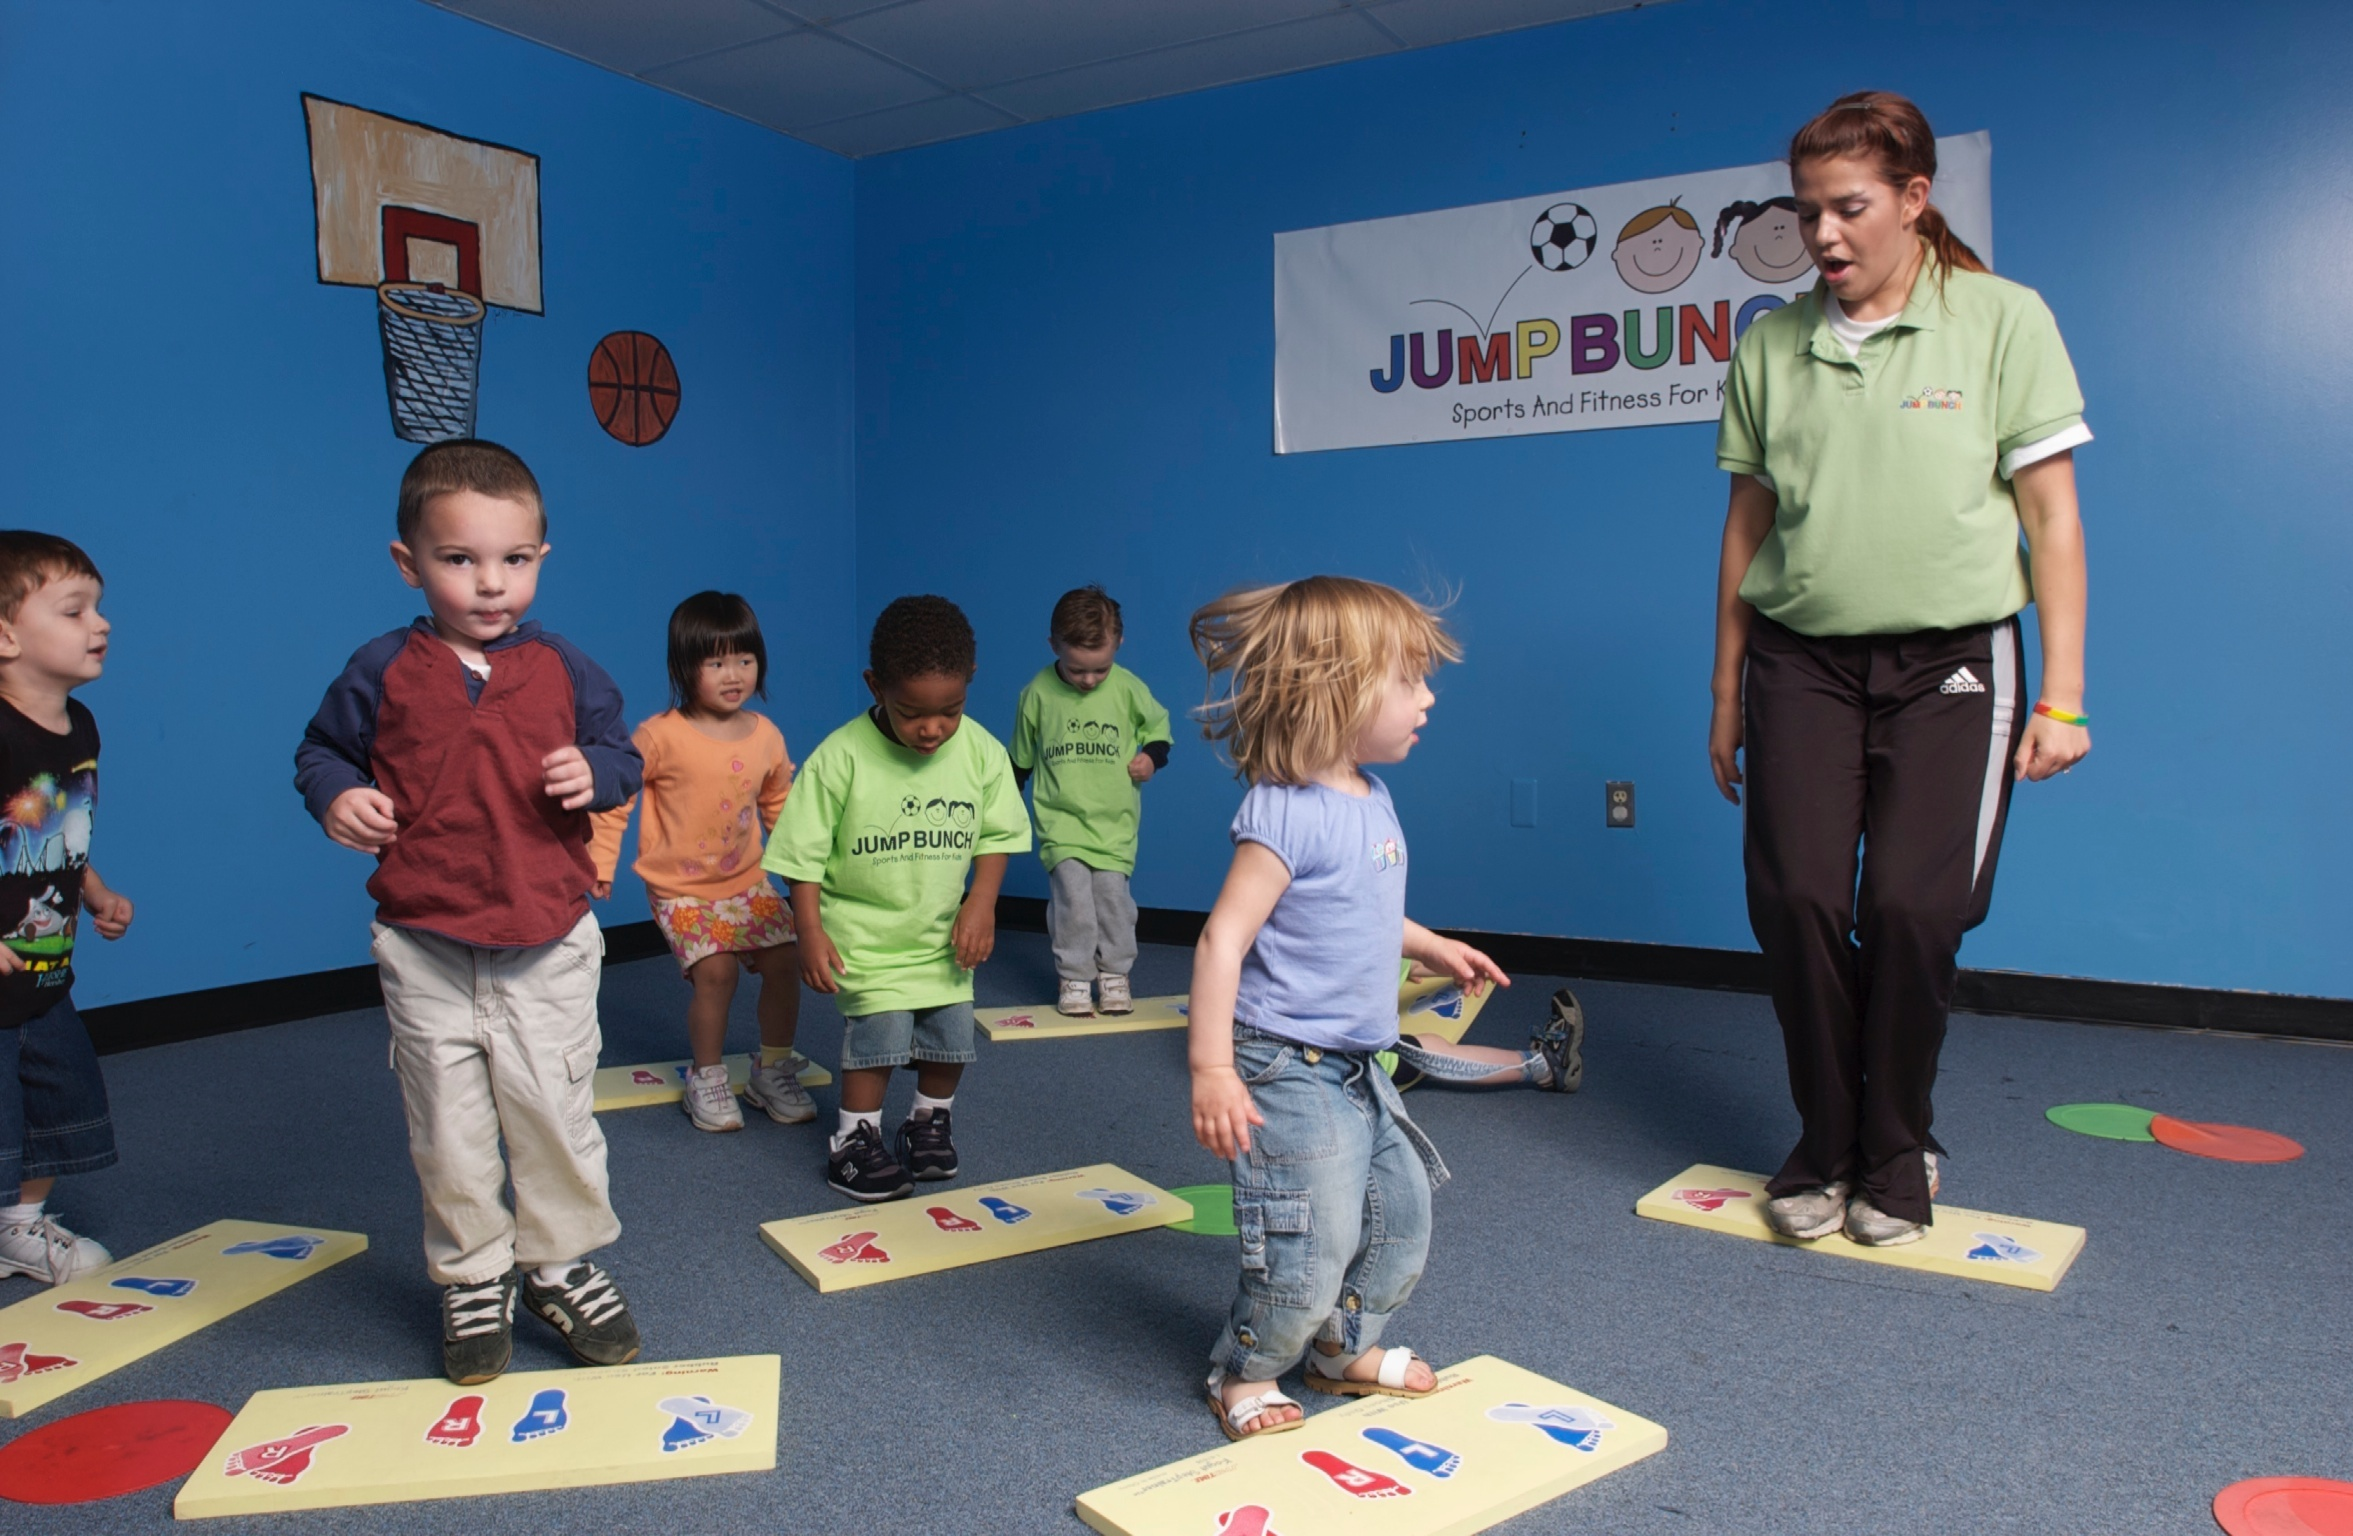 JumpBunch Arlington | A Friendly Introduction to Sports and Fitness!